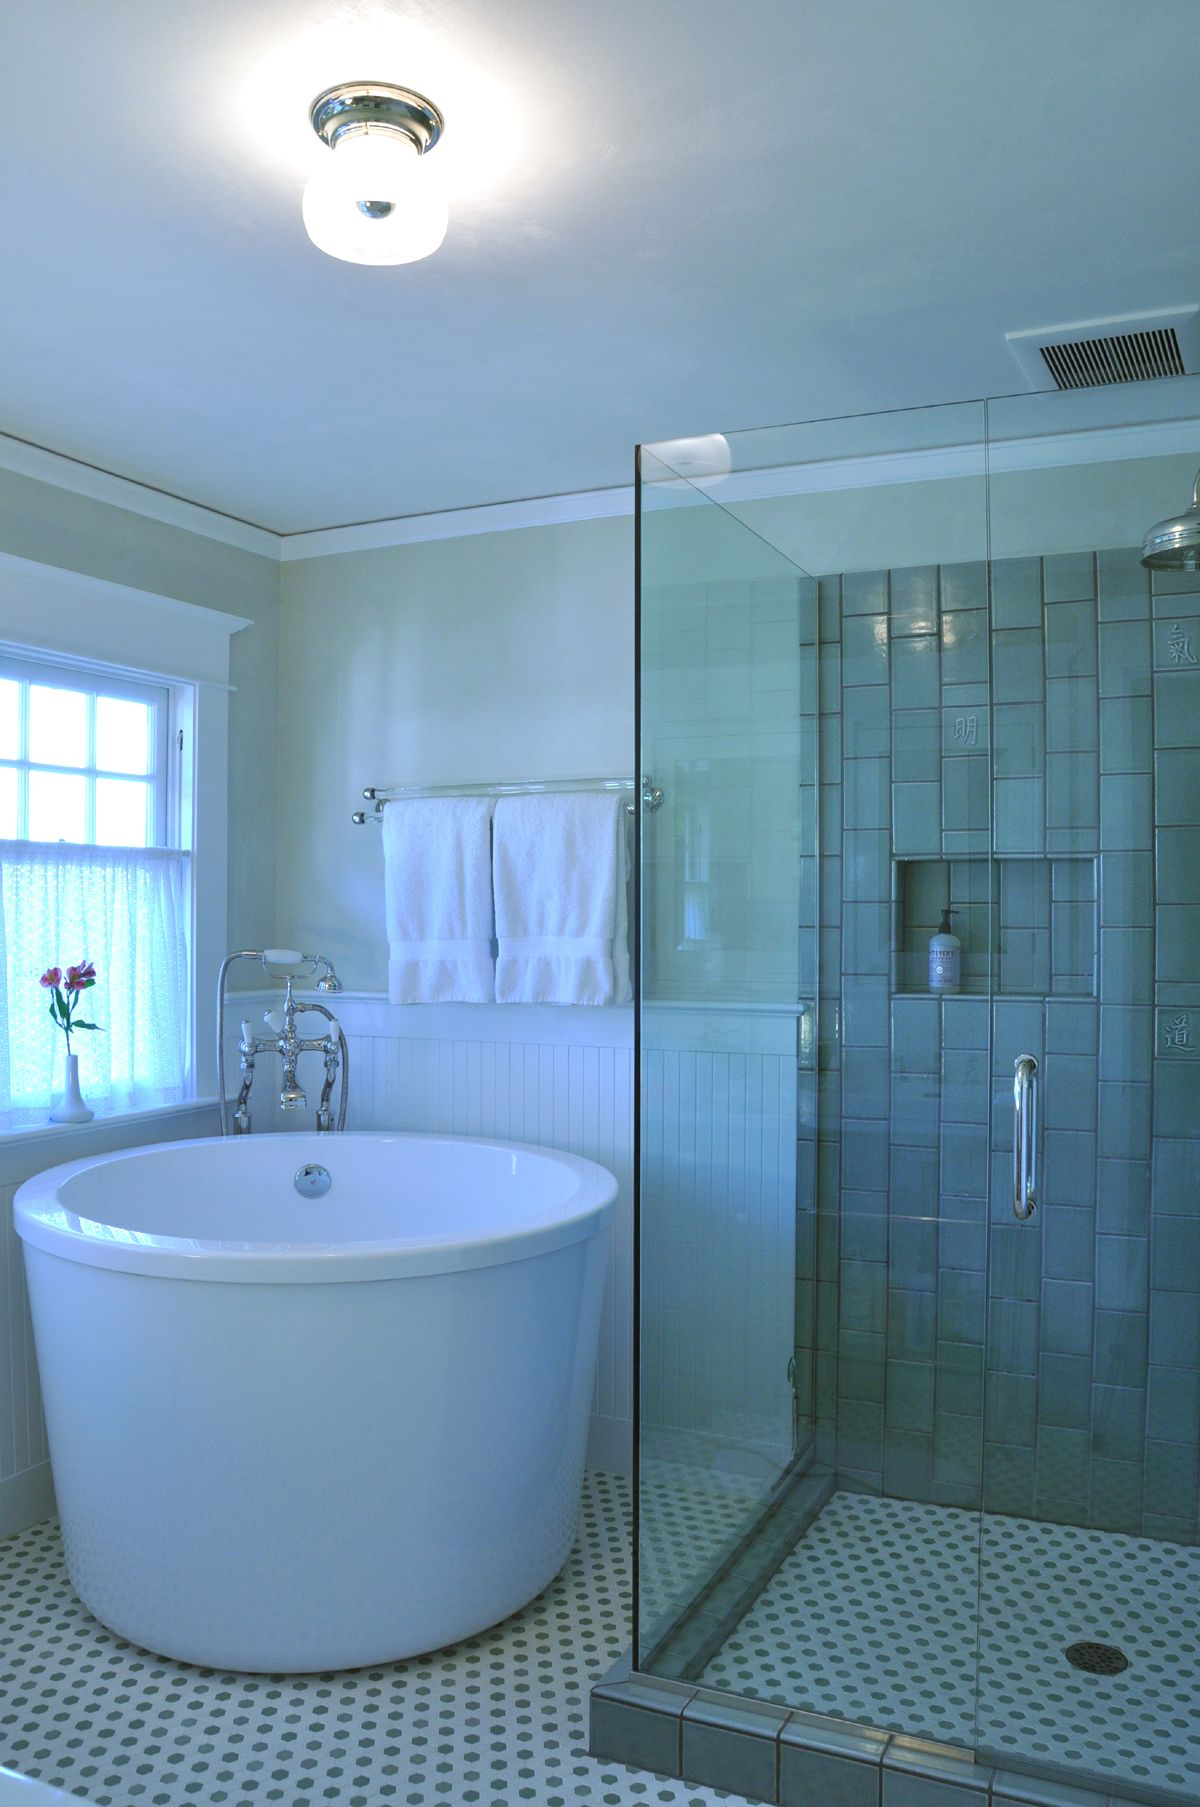 Japanese Soaking Tubs Charm And Simplicity In The Bathroom Tiny House Bathroom Small Attic Bathroom Bathroom Tub Shower Combo